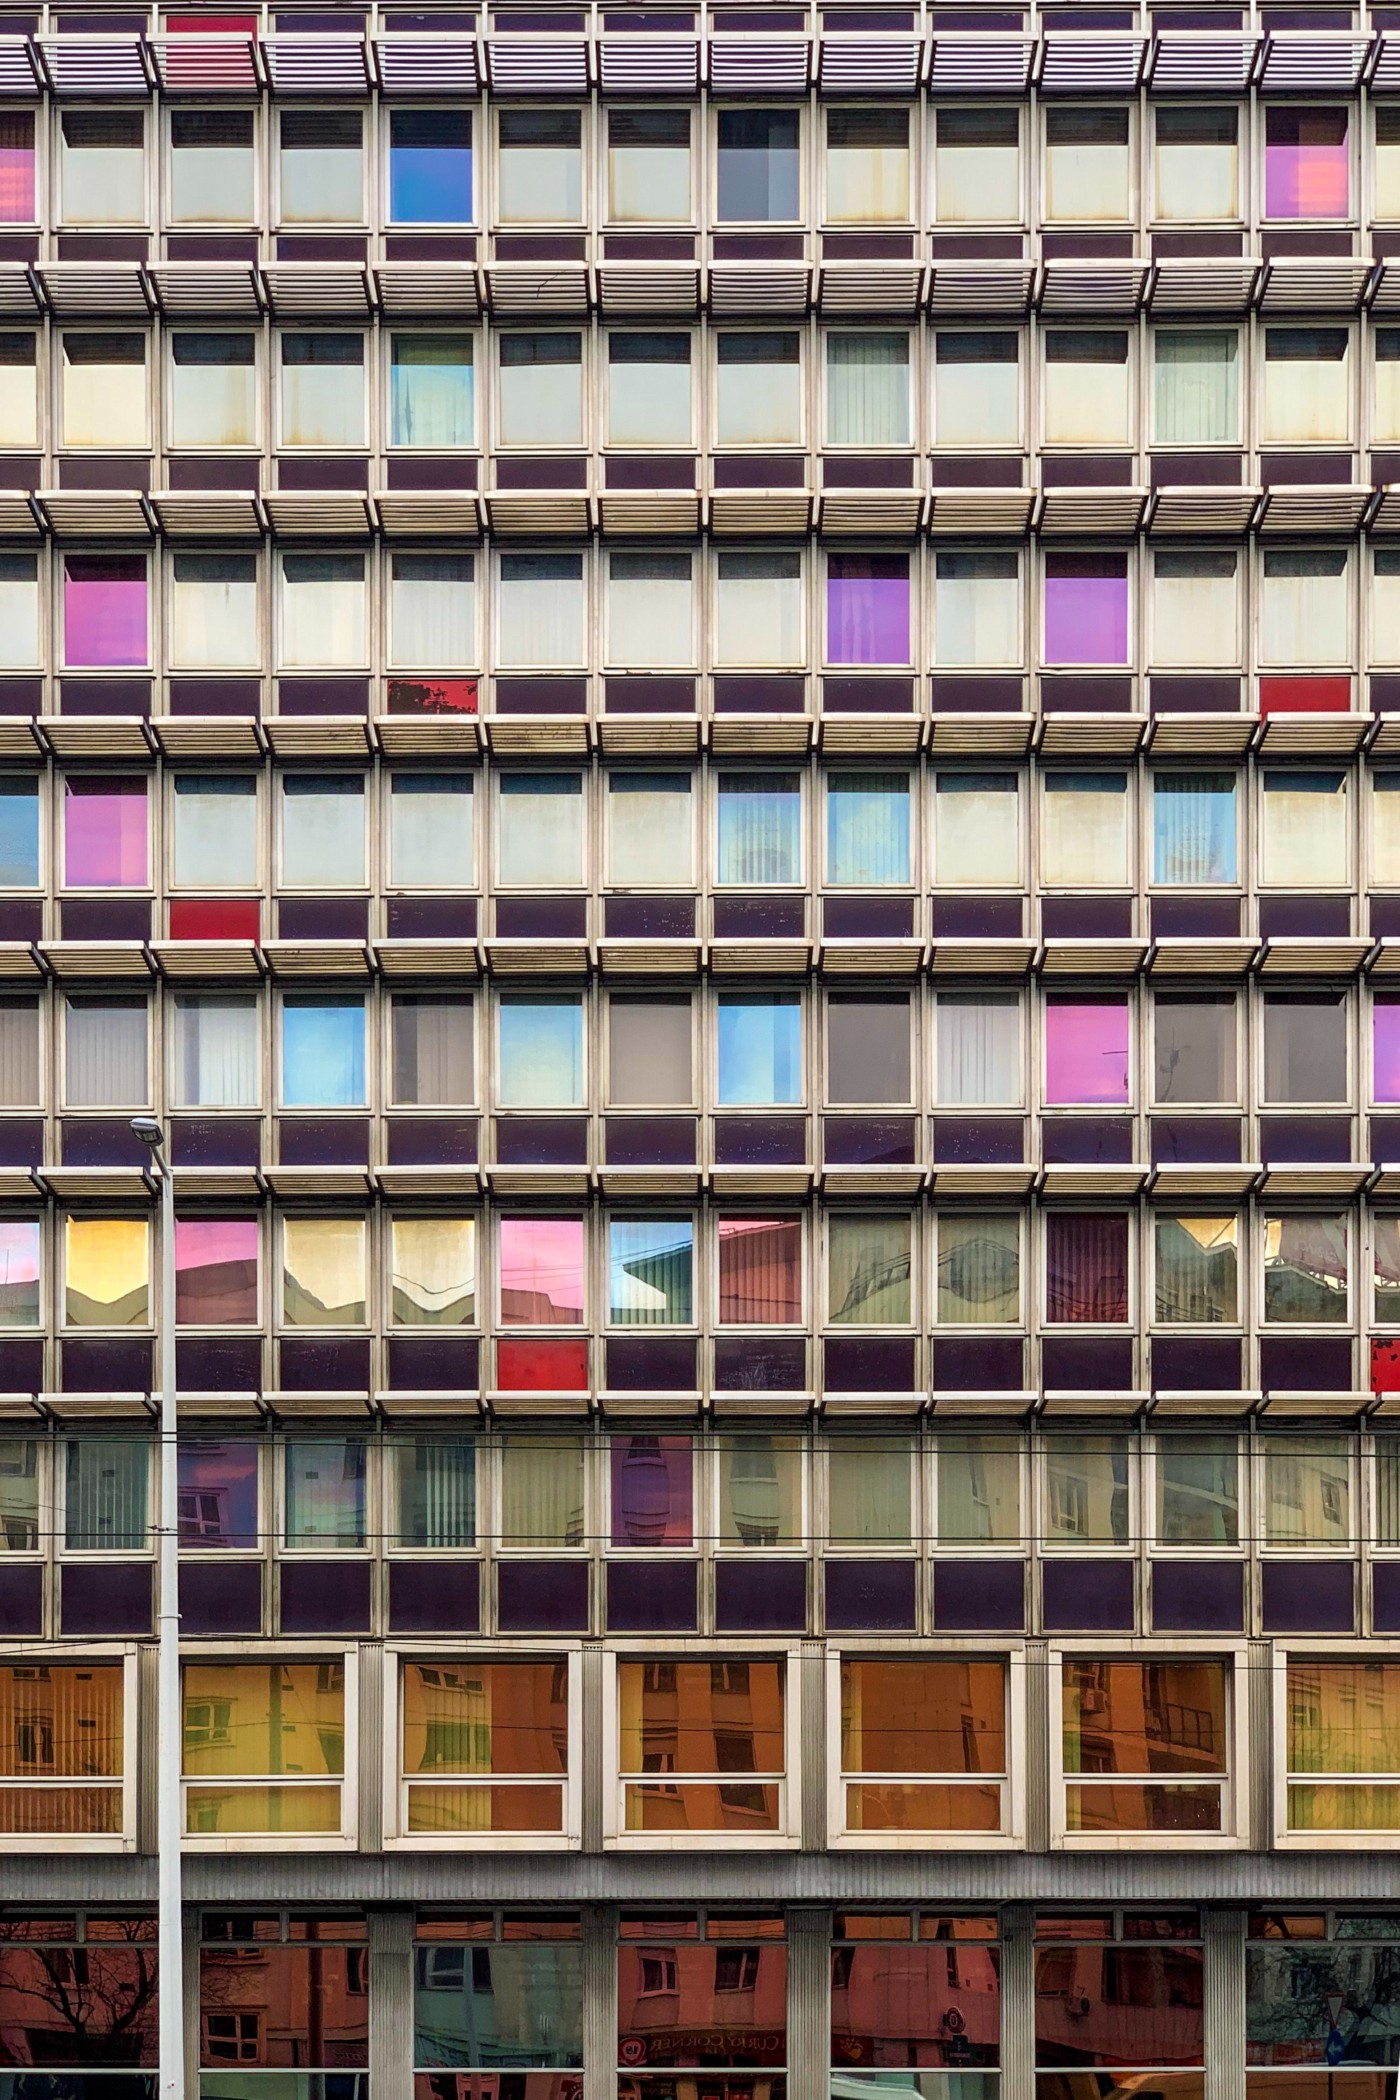 Windows on a block of buildings with different colors.